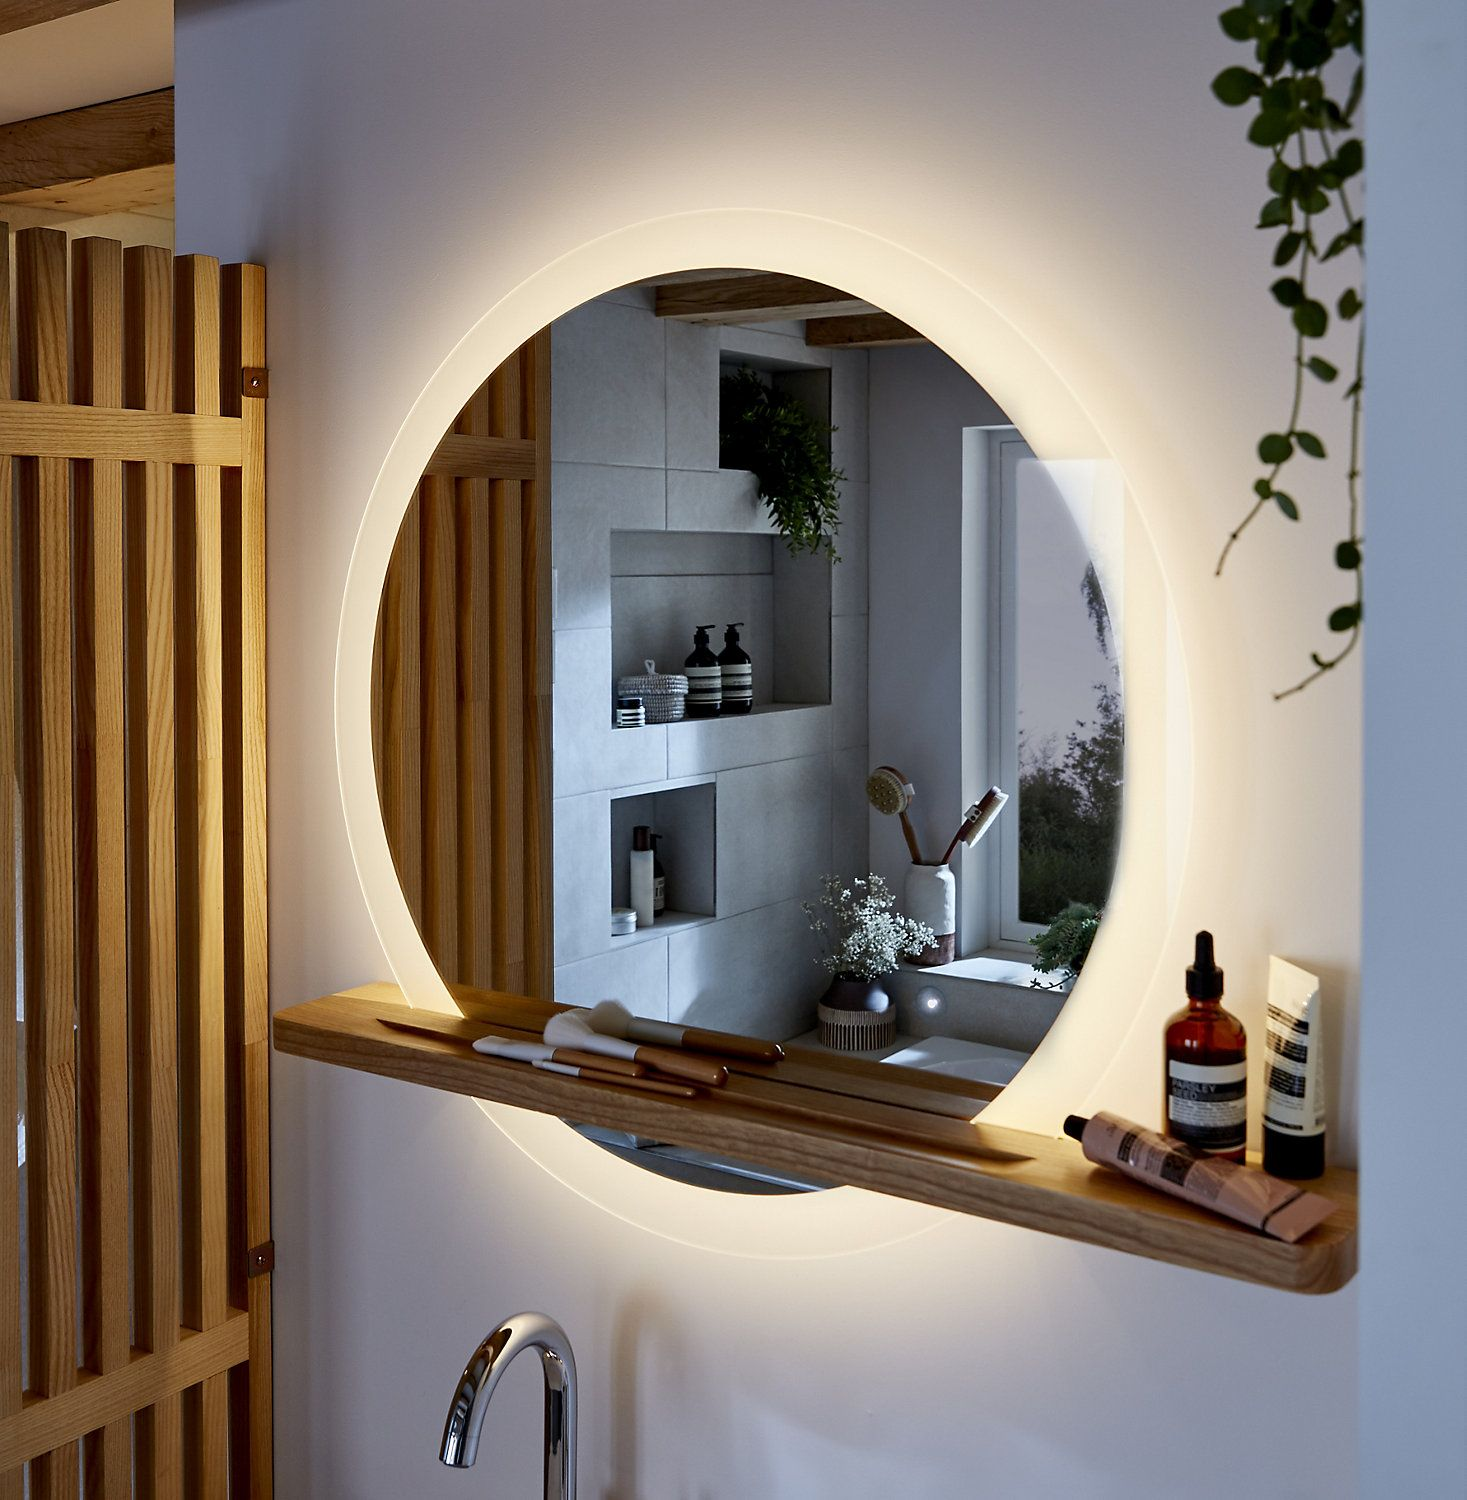 Goodhome Adriska Illuminated Round Bathroom Mirror With Shelf W 800mm H 25mm In 2020 Bathroom Mirror With Shelf Round Mirror Bathroom Bathroom Mirror